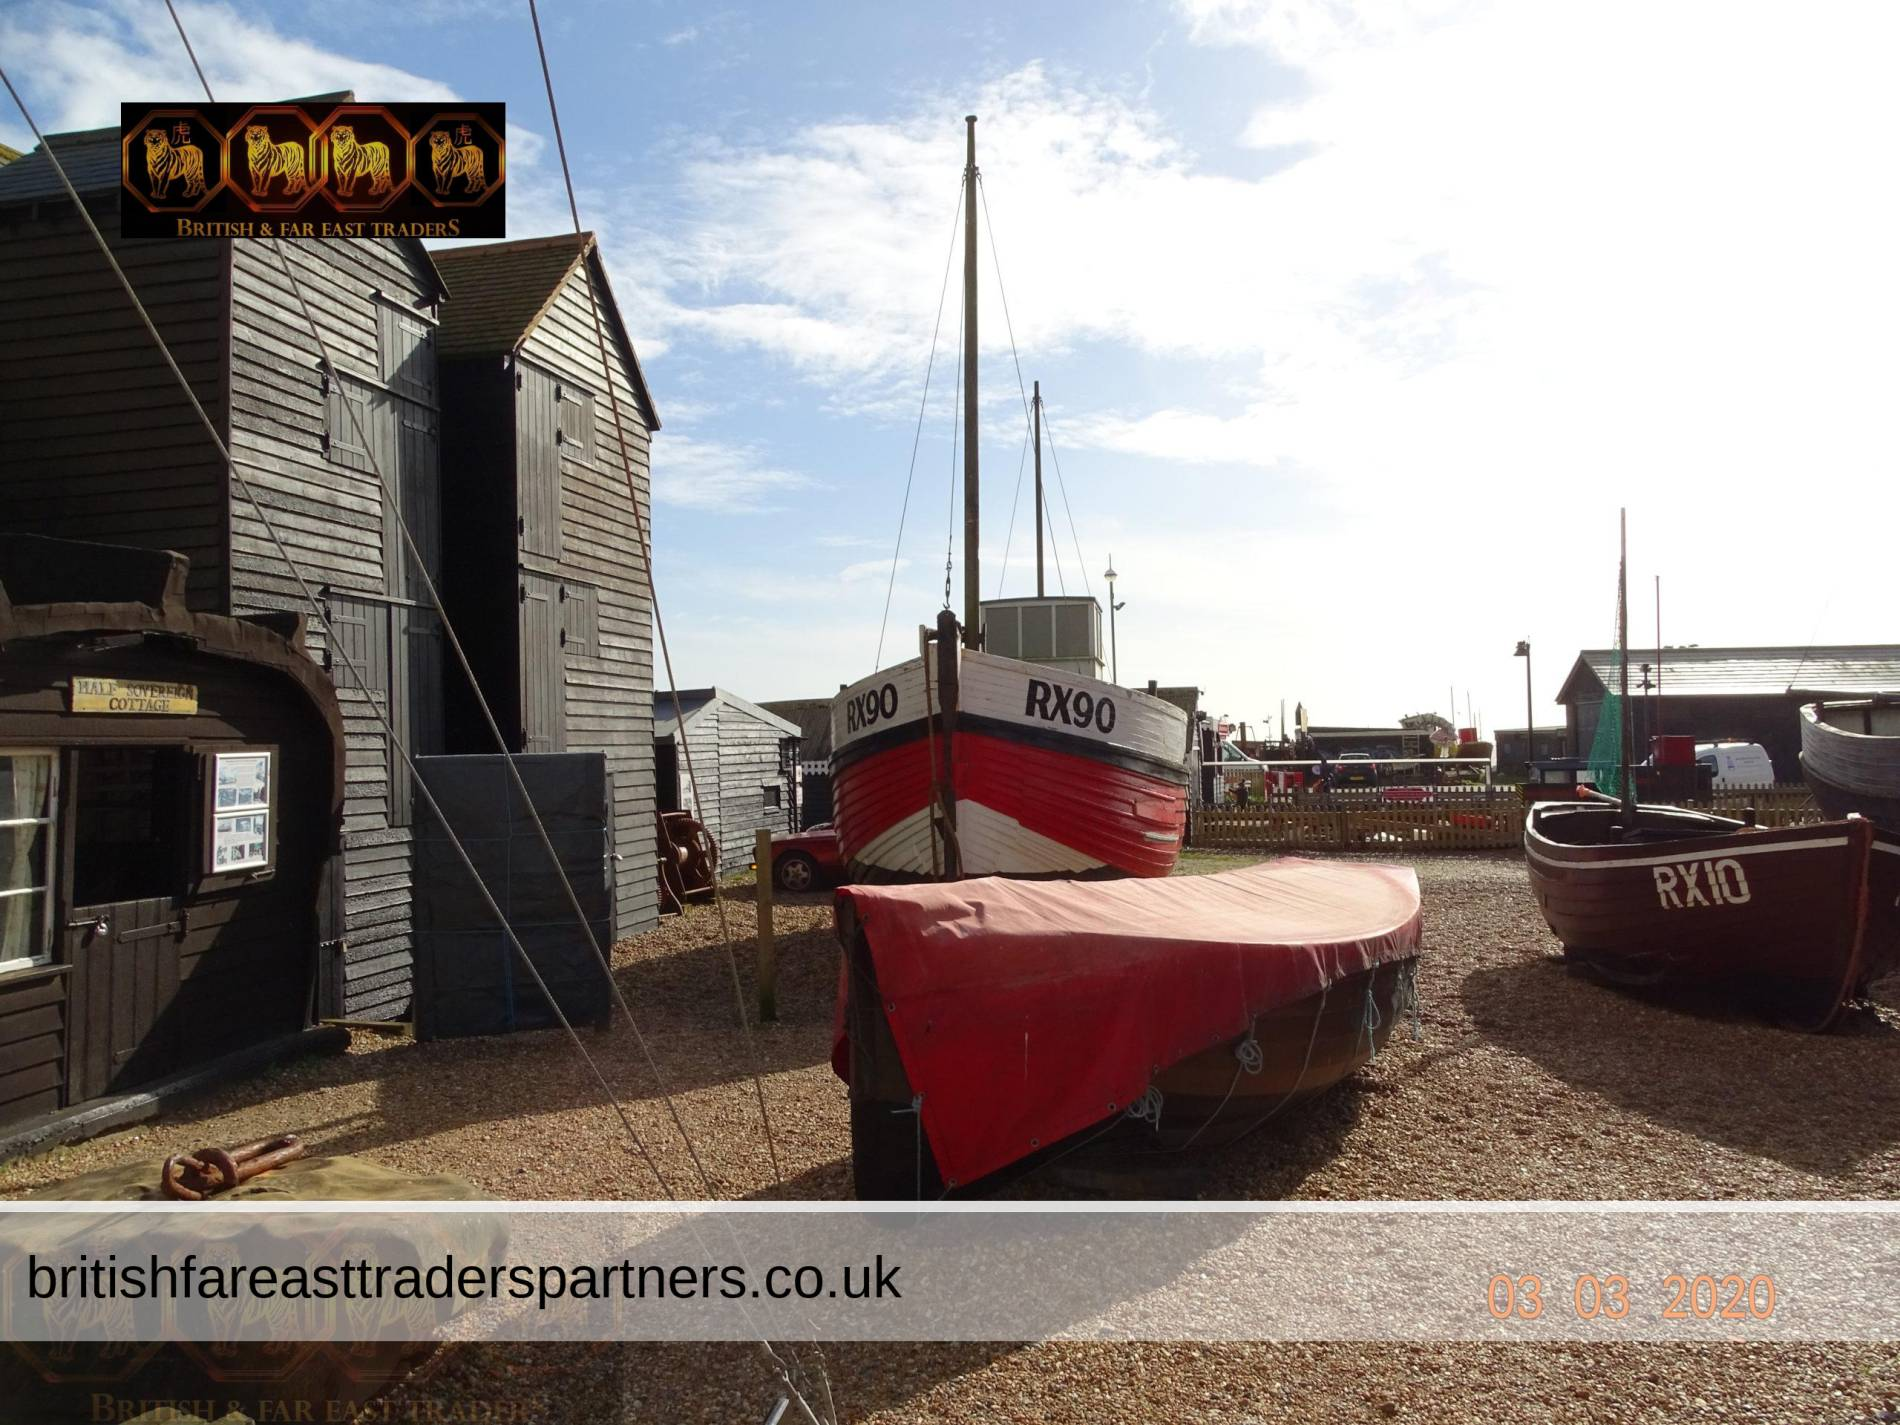 DISCOVERING THE FISHING HERITAGE OF HASTINGS OLD TOWN, ENGLAND